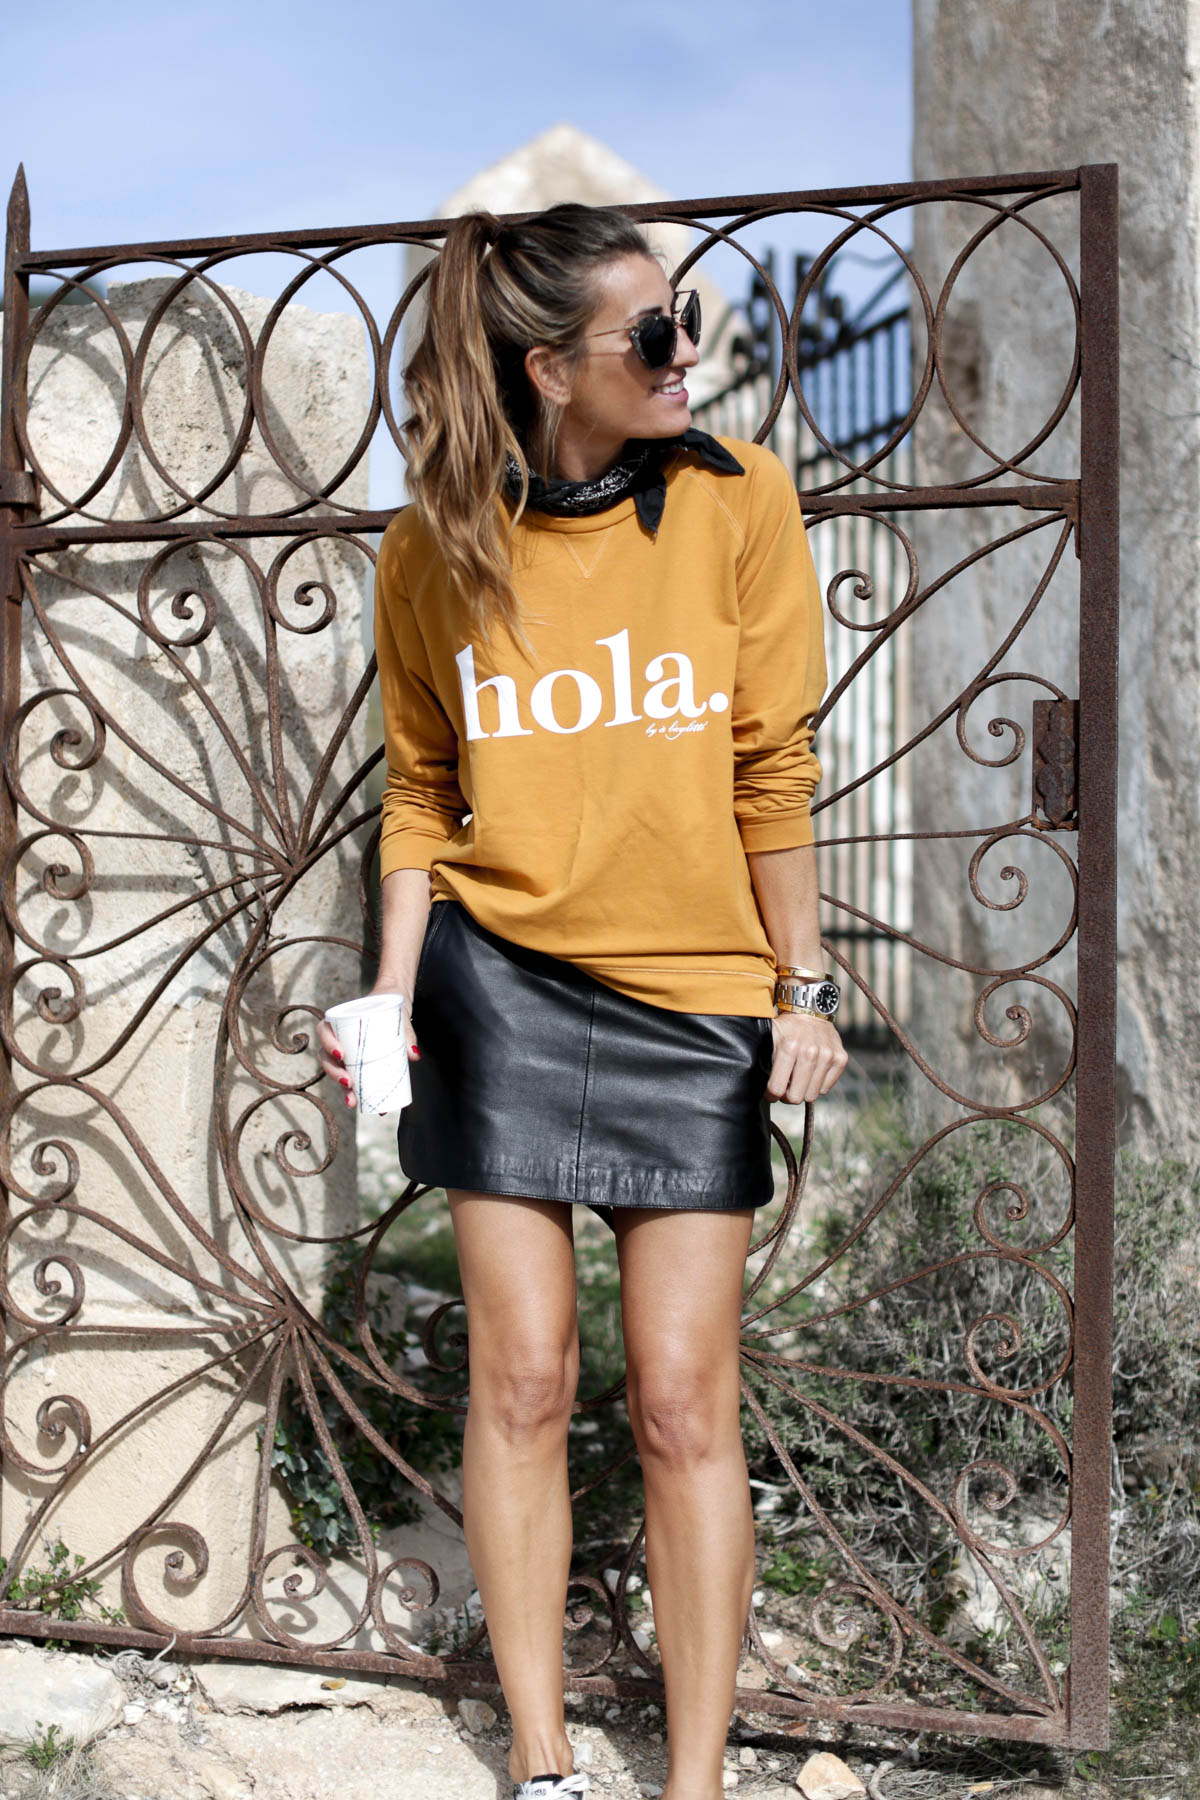 black-friday-a-bicyclette-sweatshirt-hoodie-all-star-leather-piel-cuero-celine-bag-bolso-mini-skirt-falda-streetstyle-look-bartabac-outfit-moda-blogger-3